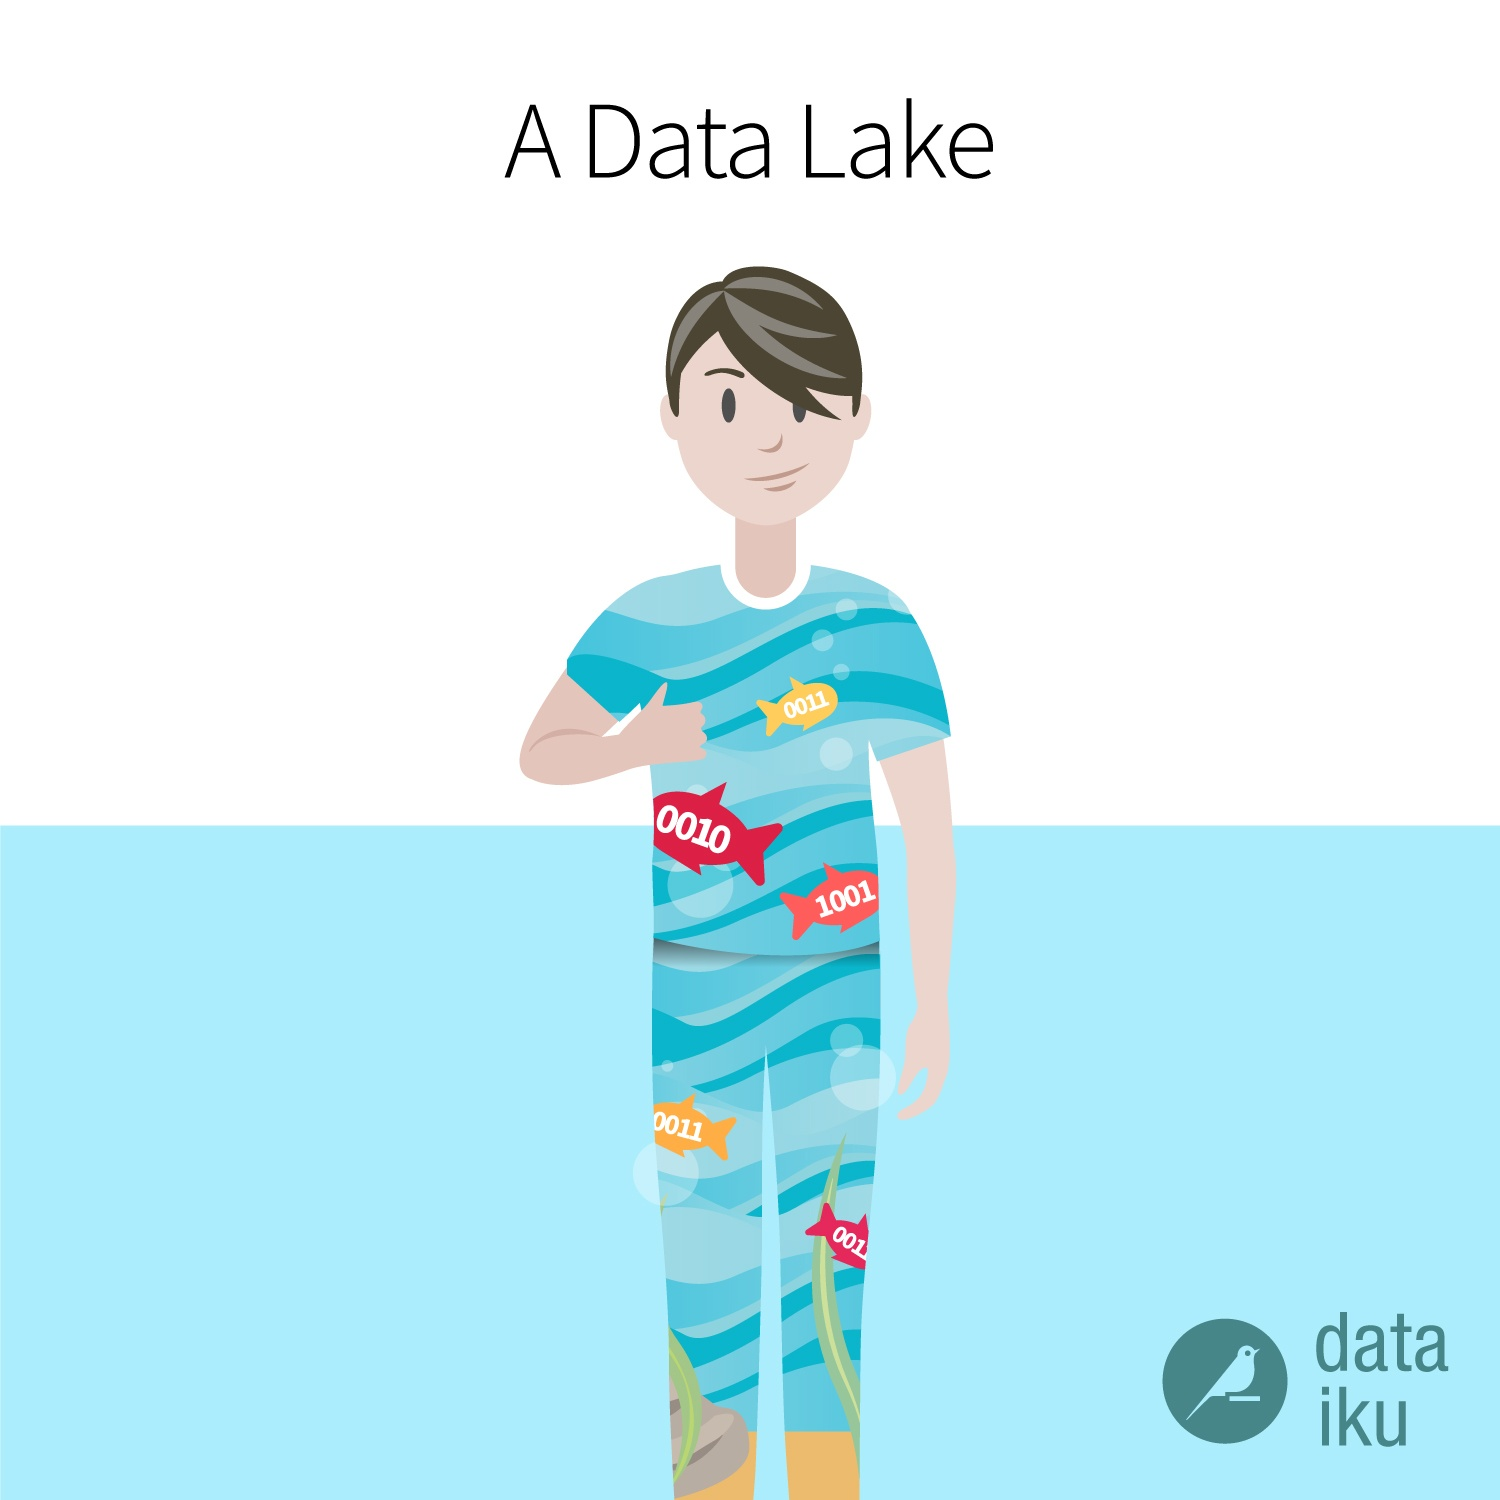 A-DATA-LAKE-Halloween-blog-posts.jpg